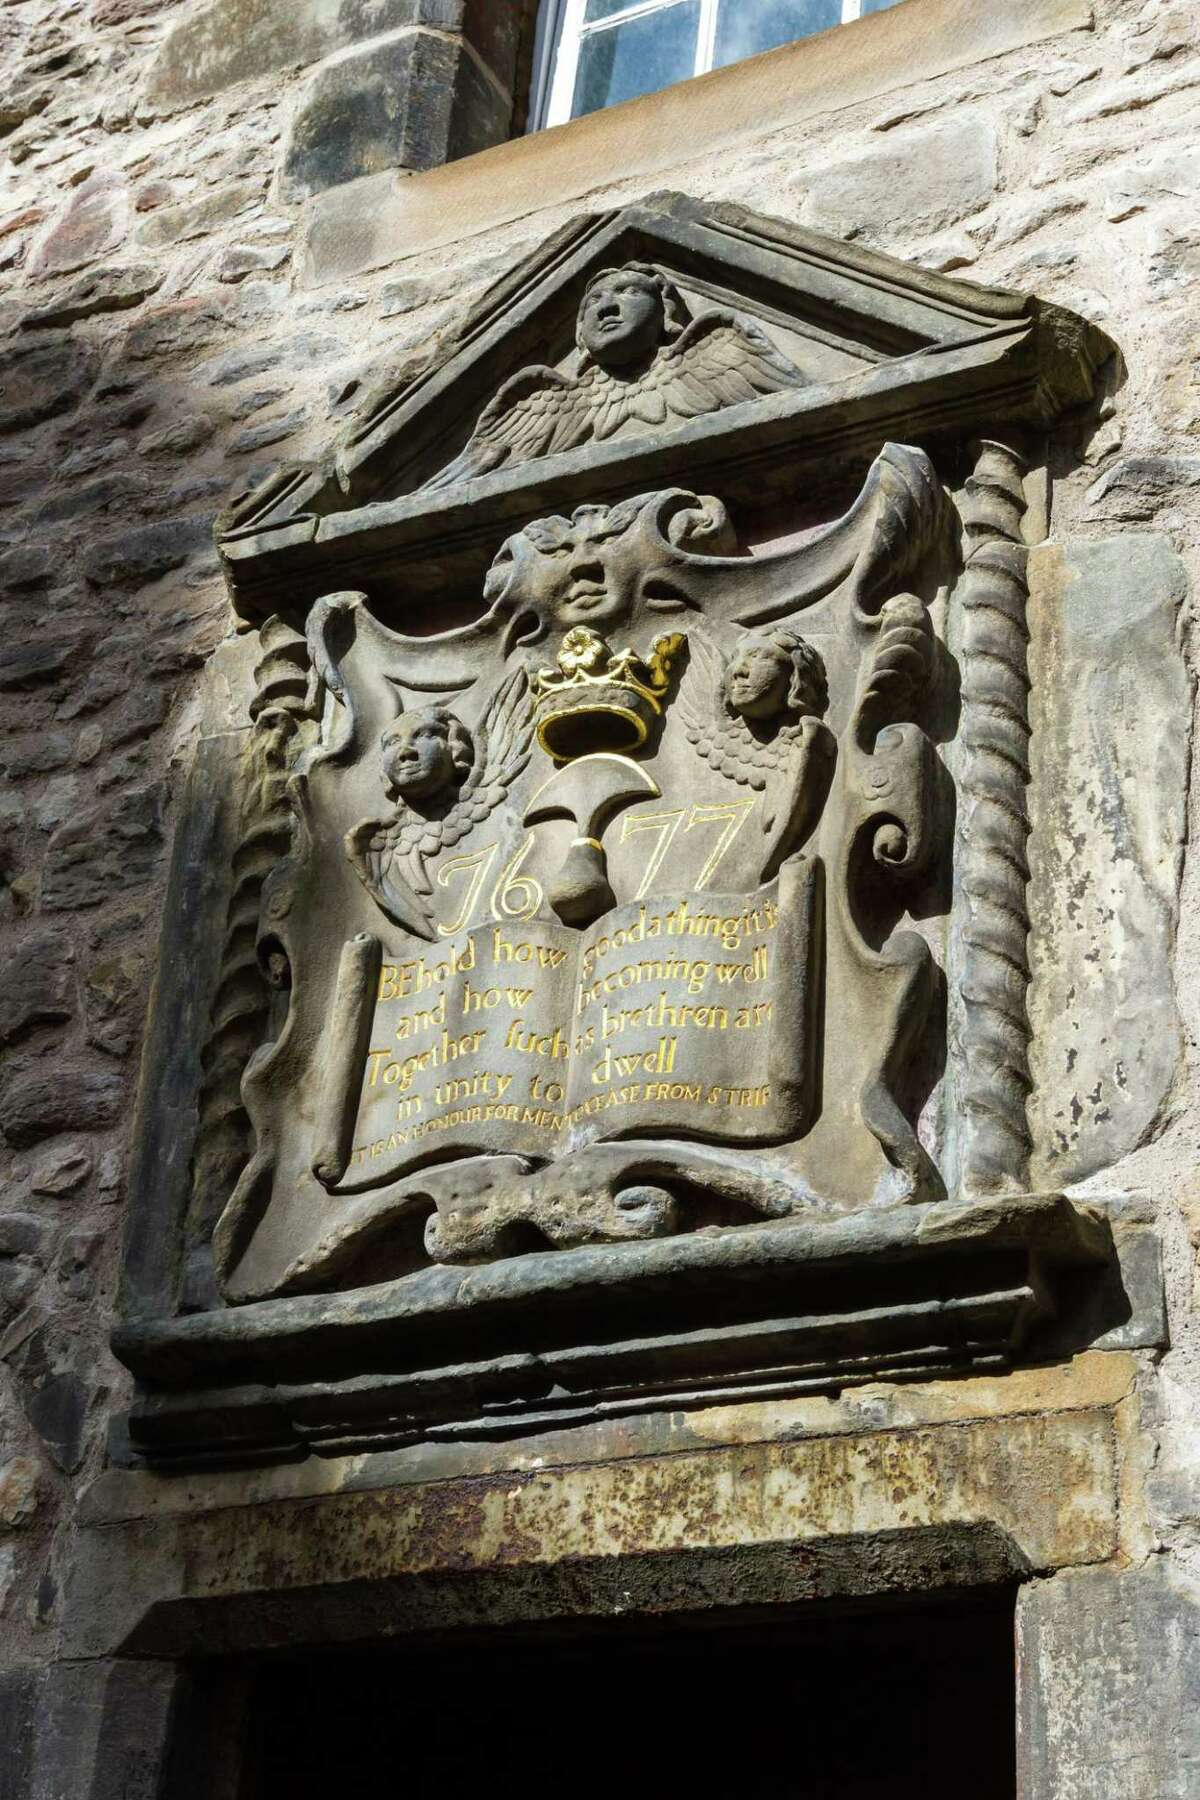 Psalm 133 chiseled into a stone book above the Canongate doors Edinburgh.